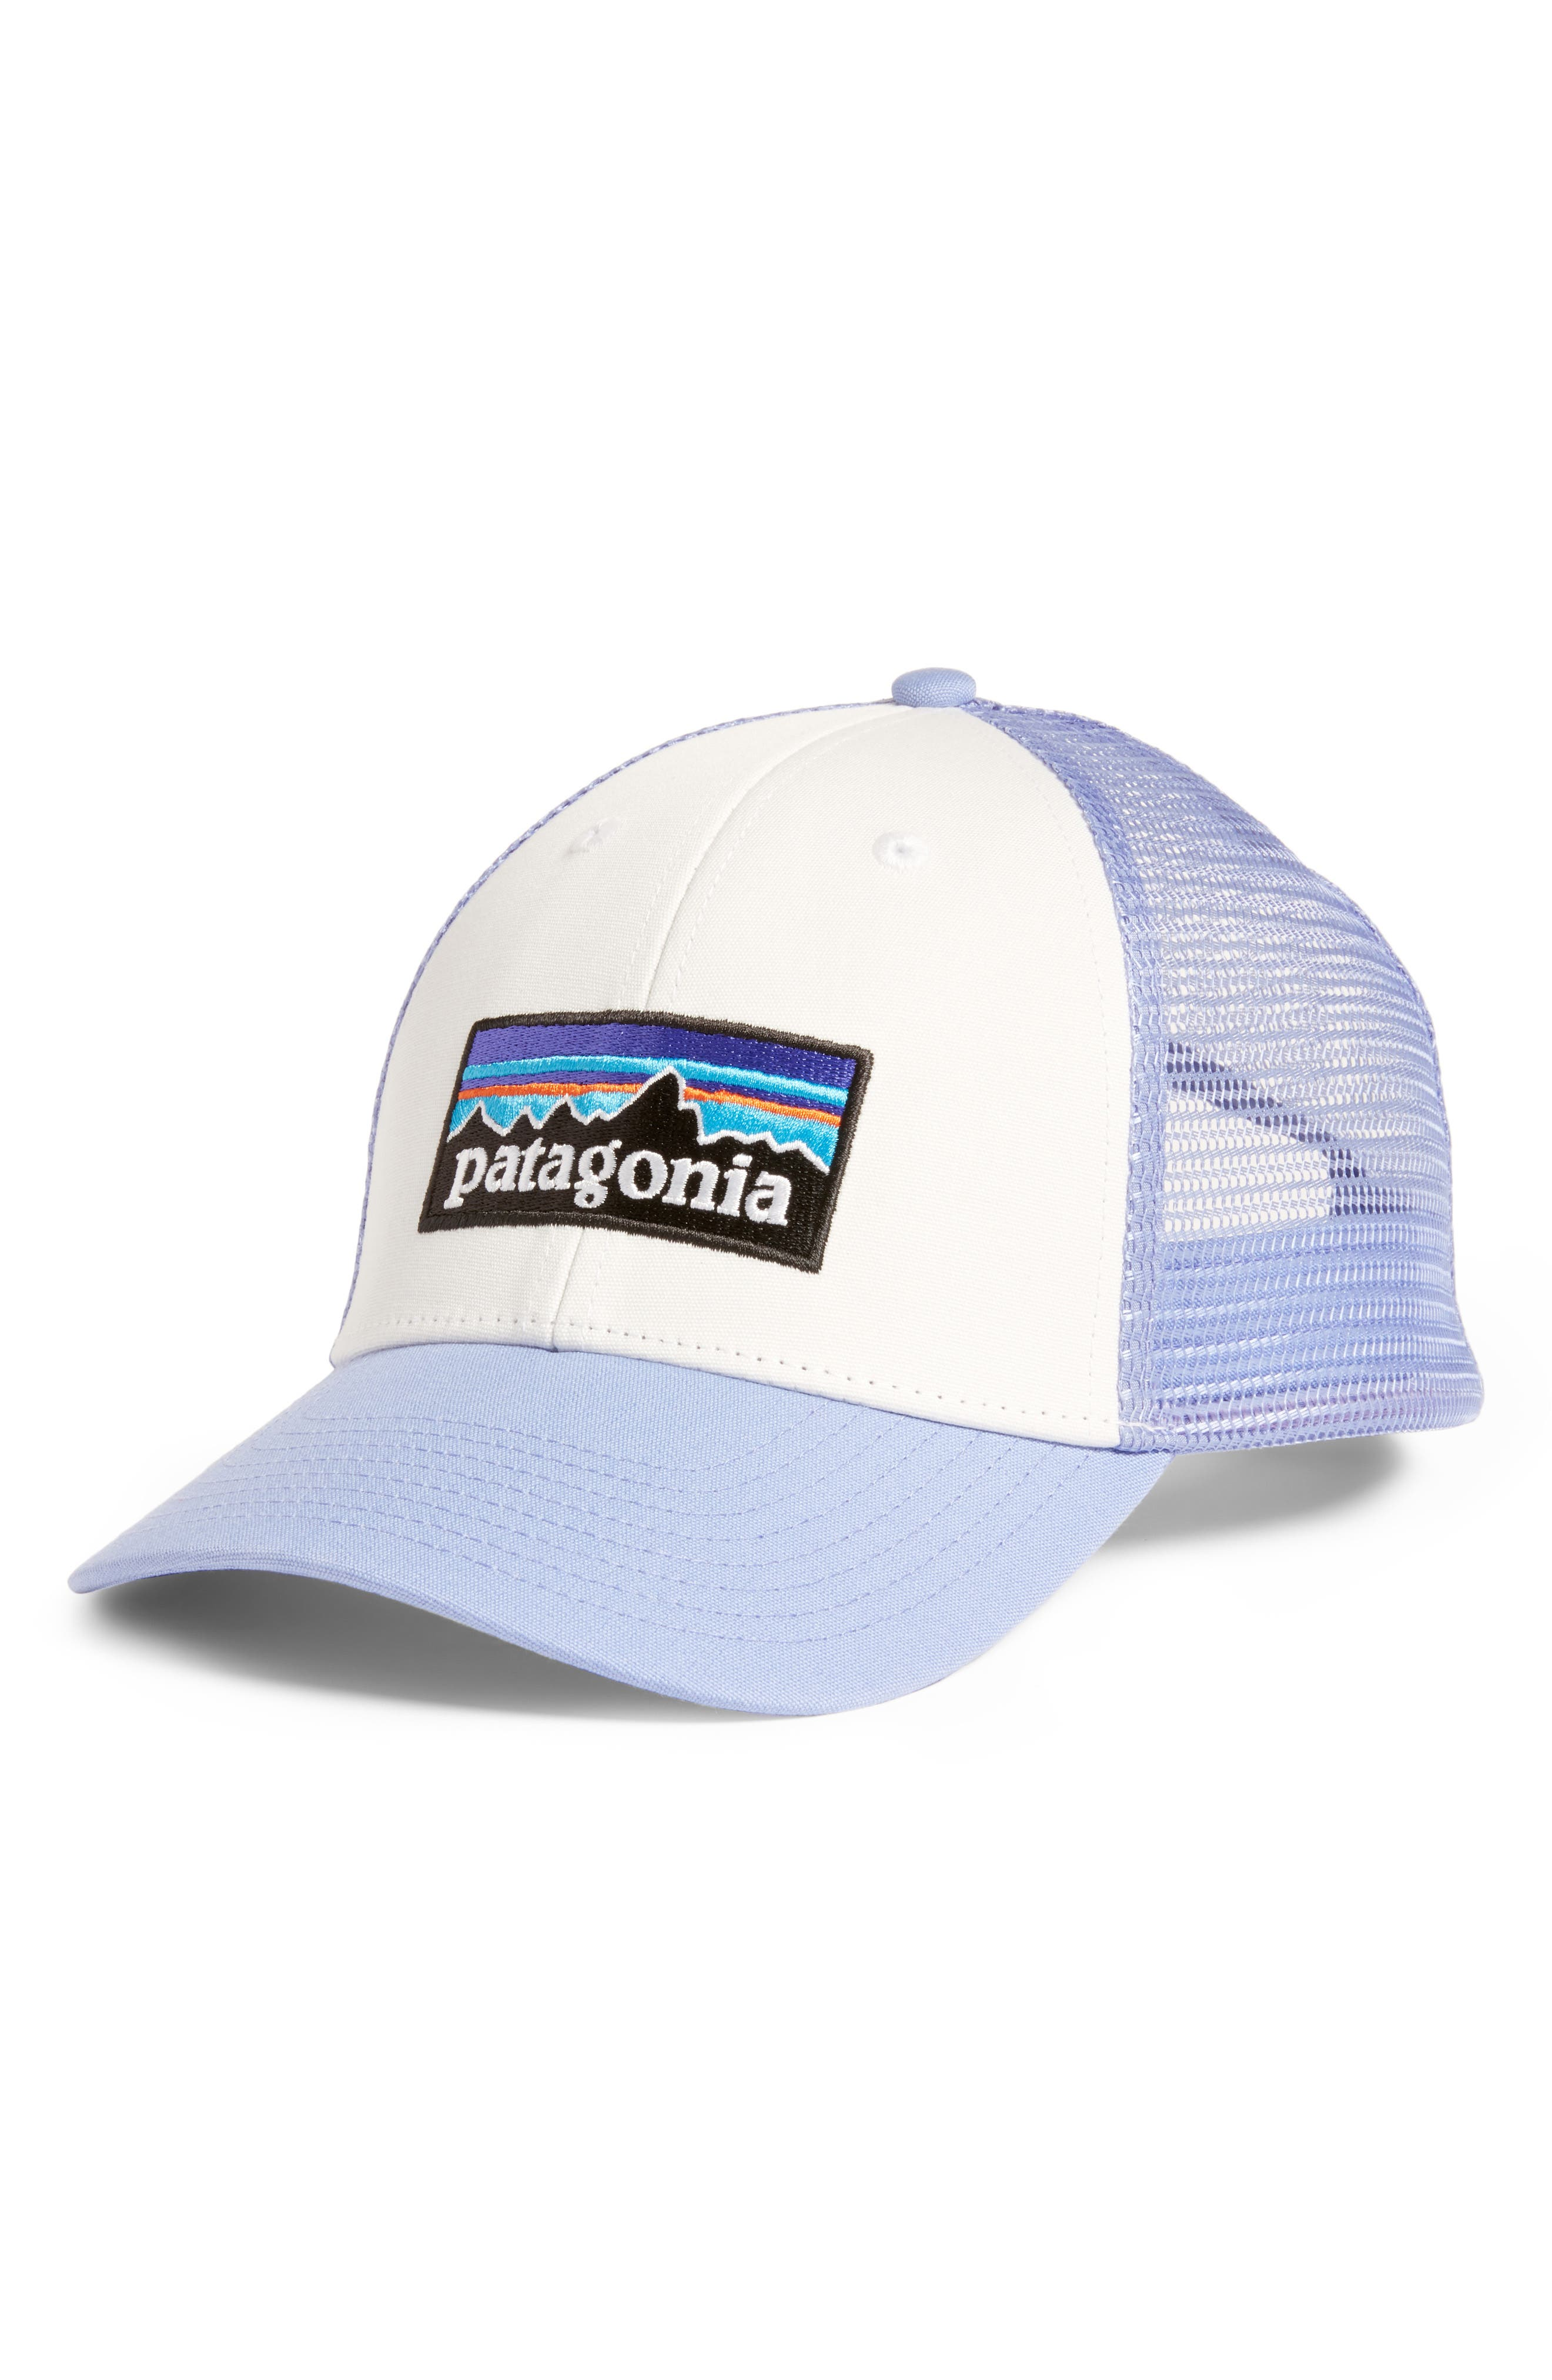 PATAGONIA P6 LoPro Trucker Hat, Main, color, WHITE W/ LIGHT VIOLET BLUE